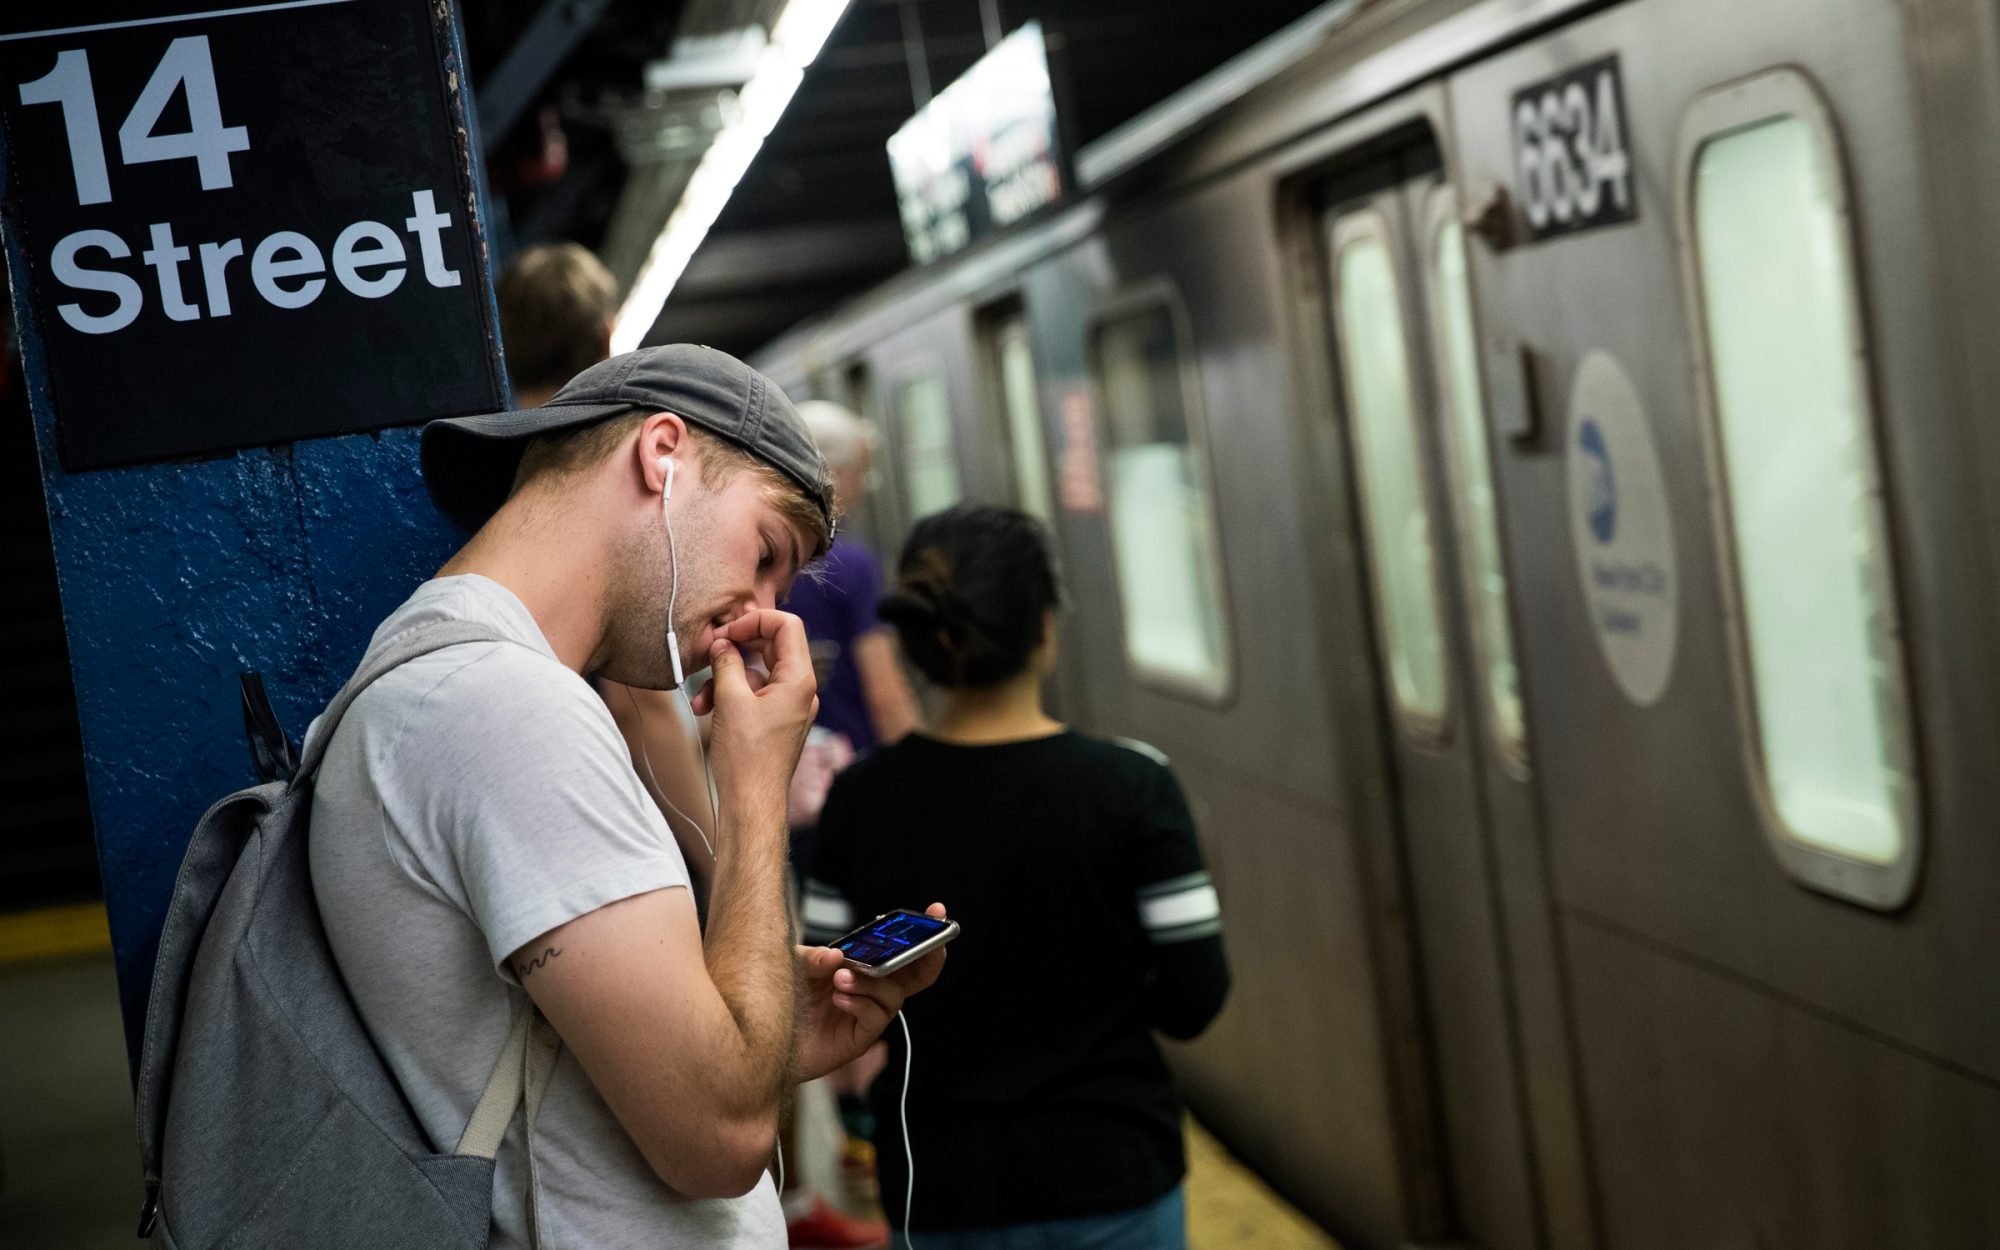 New York City's L train to shut down for a year and a half